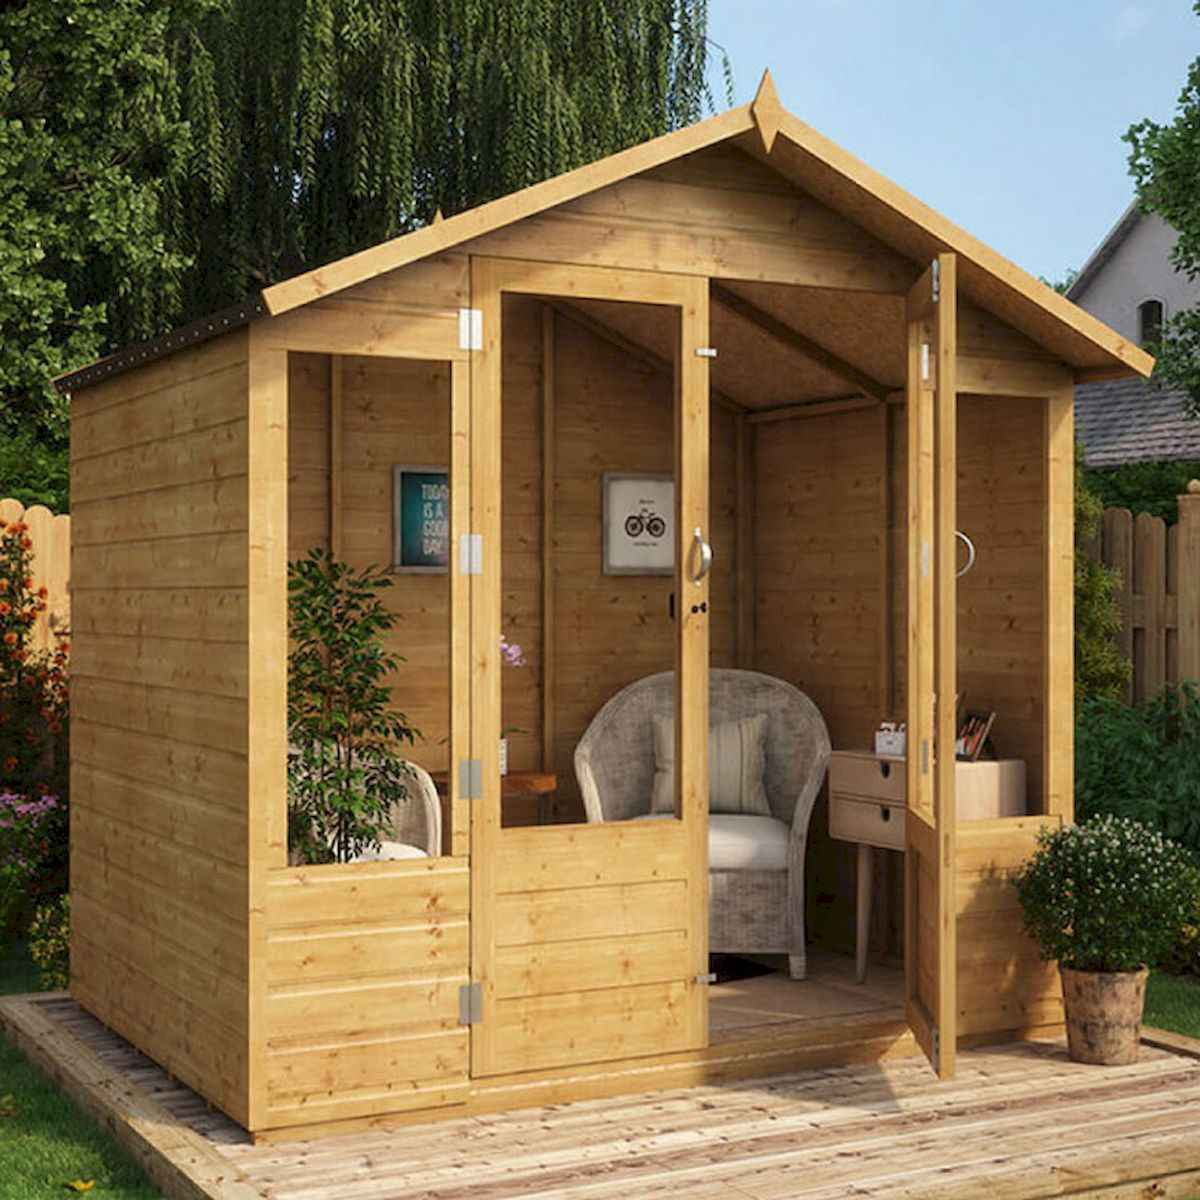 90 beautiful summer house design ideas and makeover make your summer awesome (67)